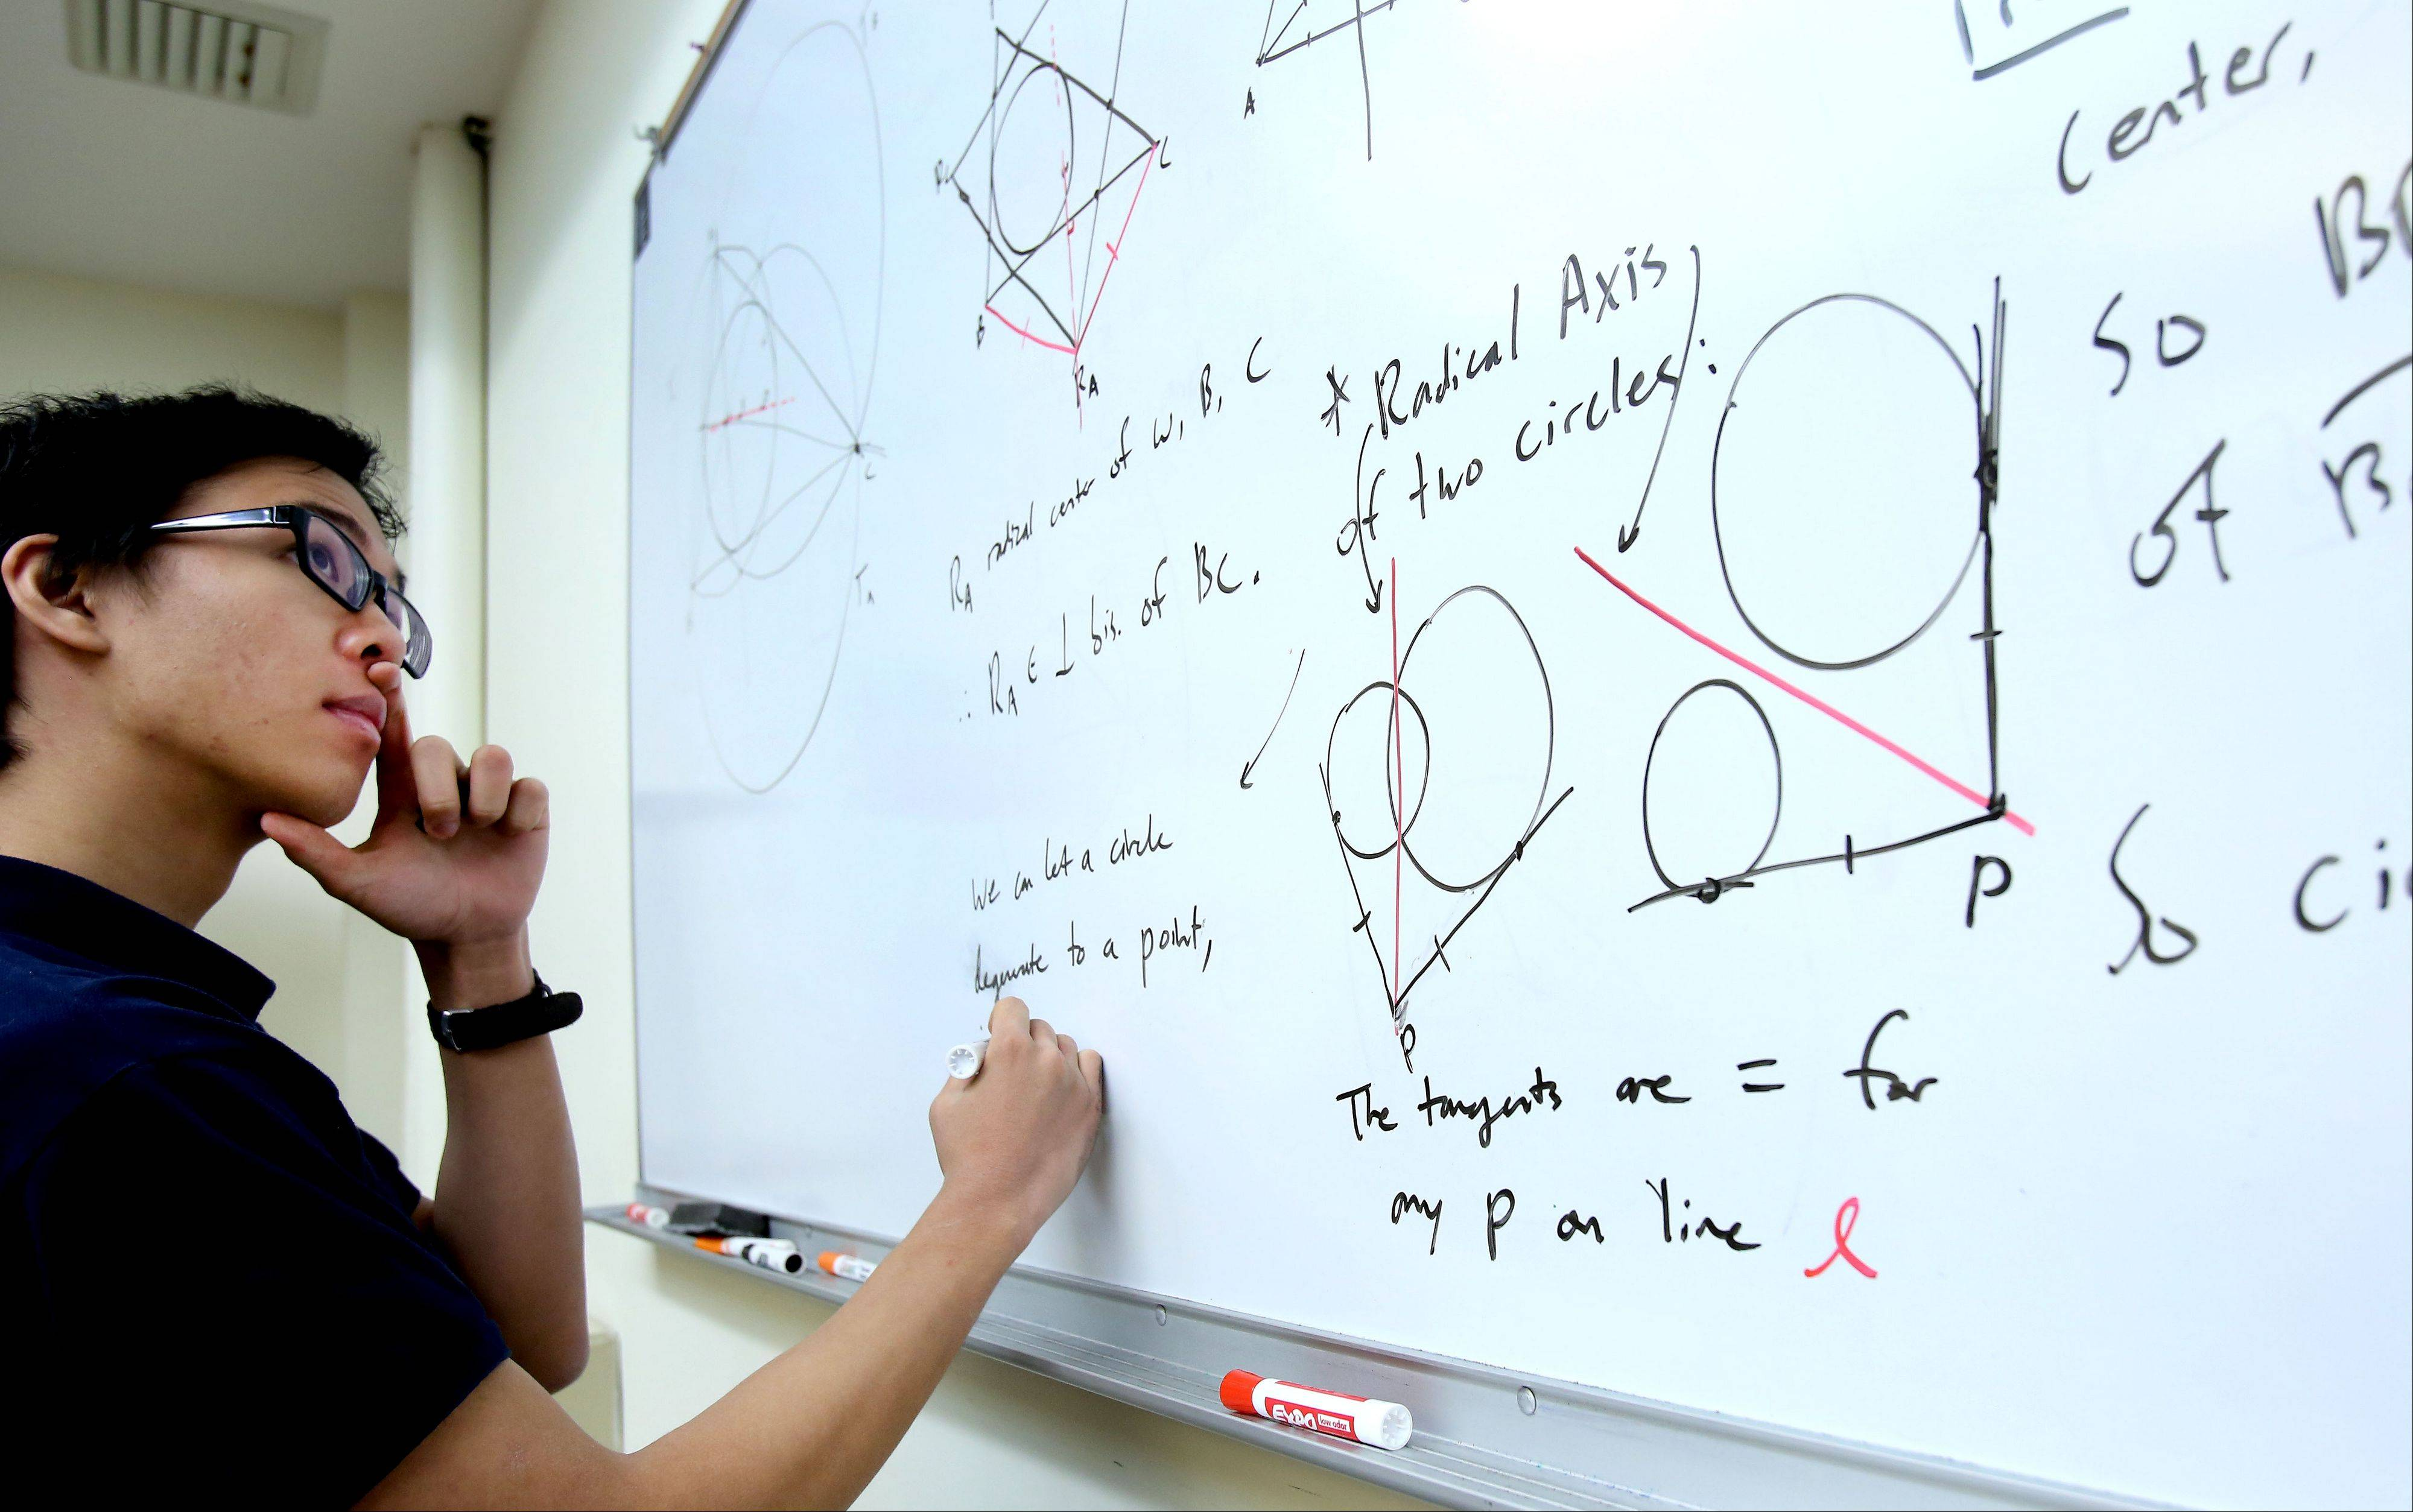 Students at the Illinois Mathematics and Science Academy in Aurora will get a boost from an Innovation Hub planned to be built by late 2015. Here, James Tao works on a math problem from the Romanian Mathematical Olympiad in 2012.